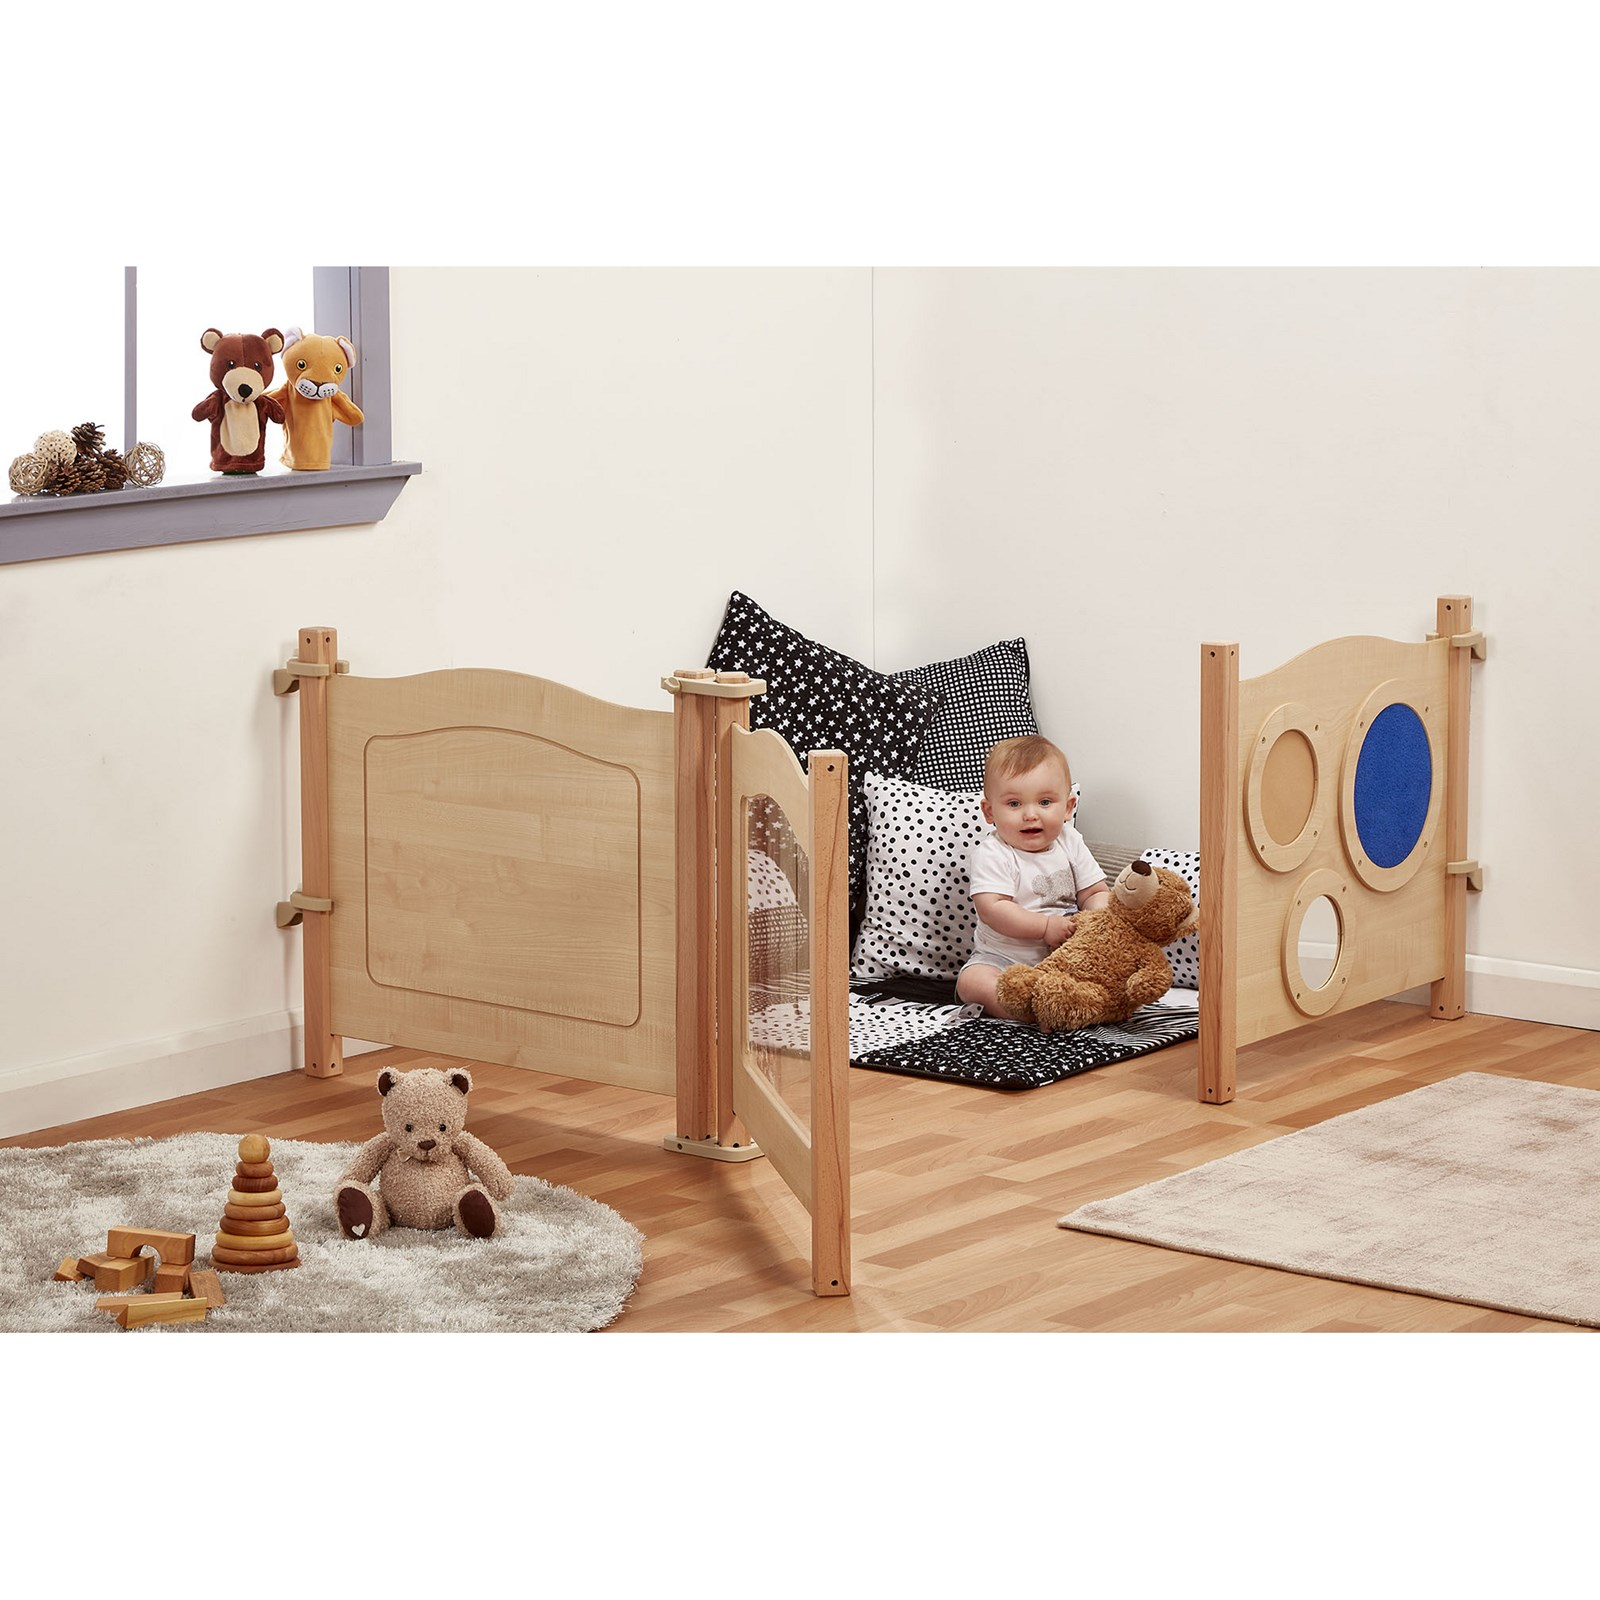 Room Dividers & Play Panels